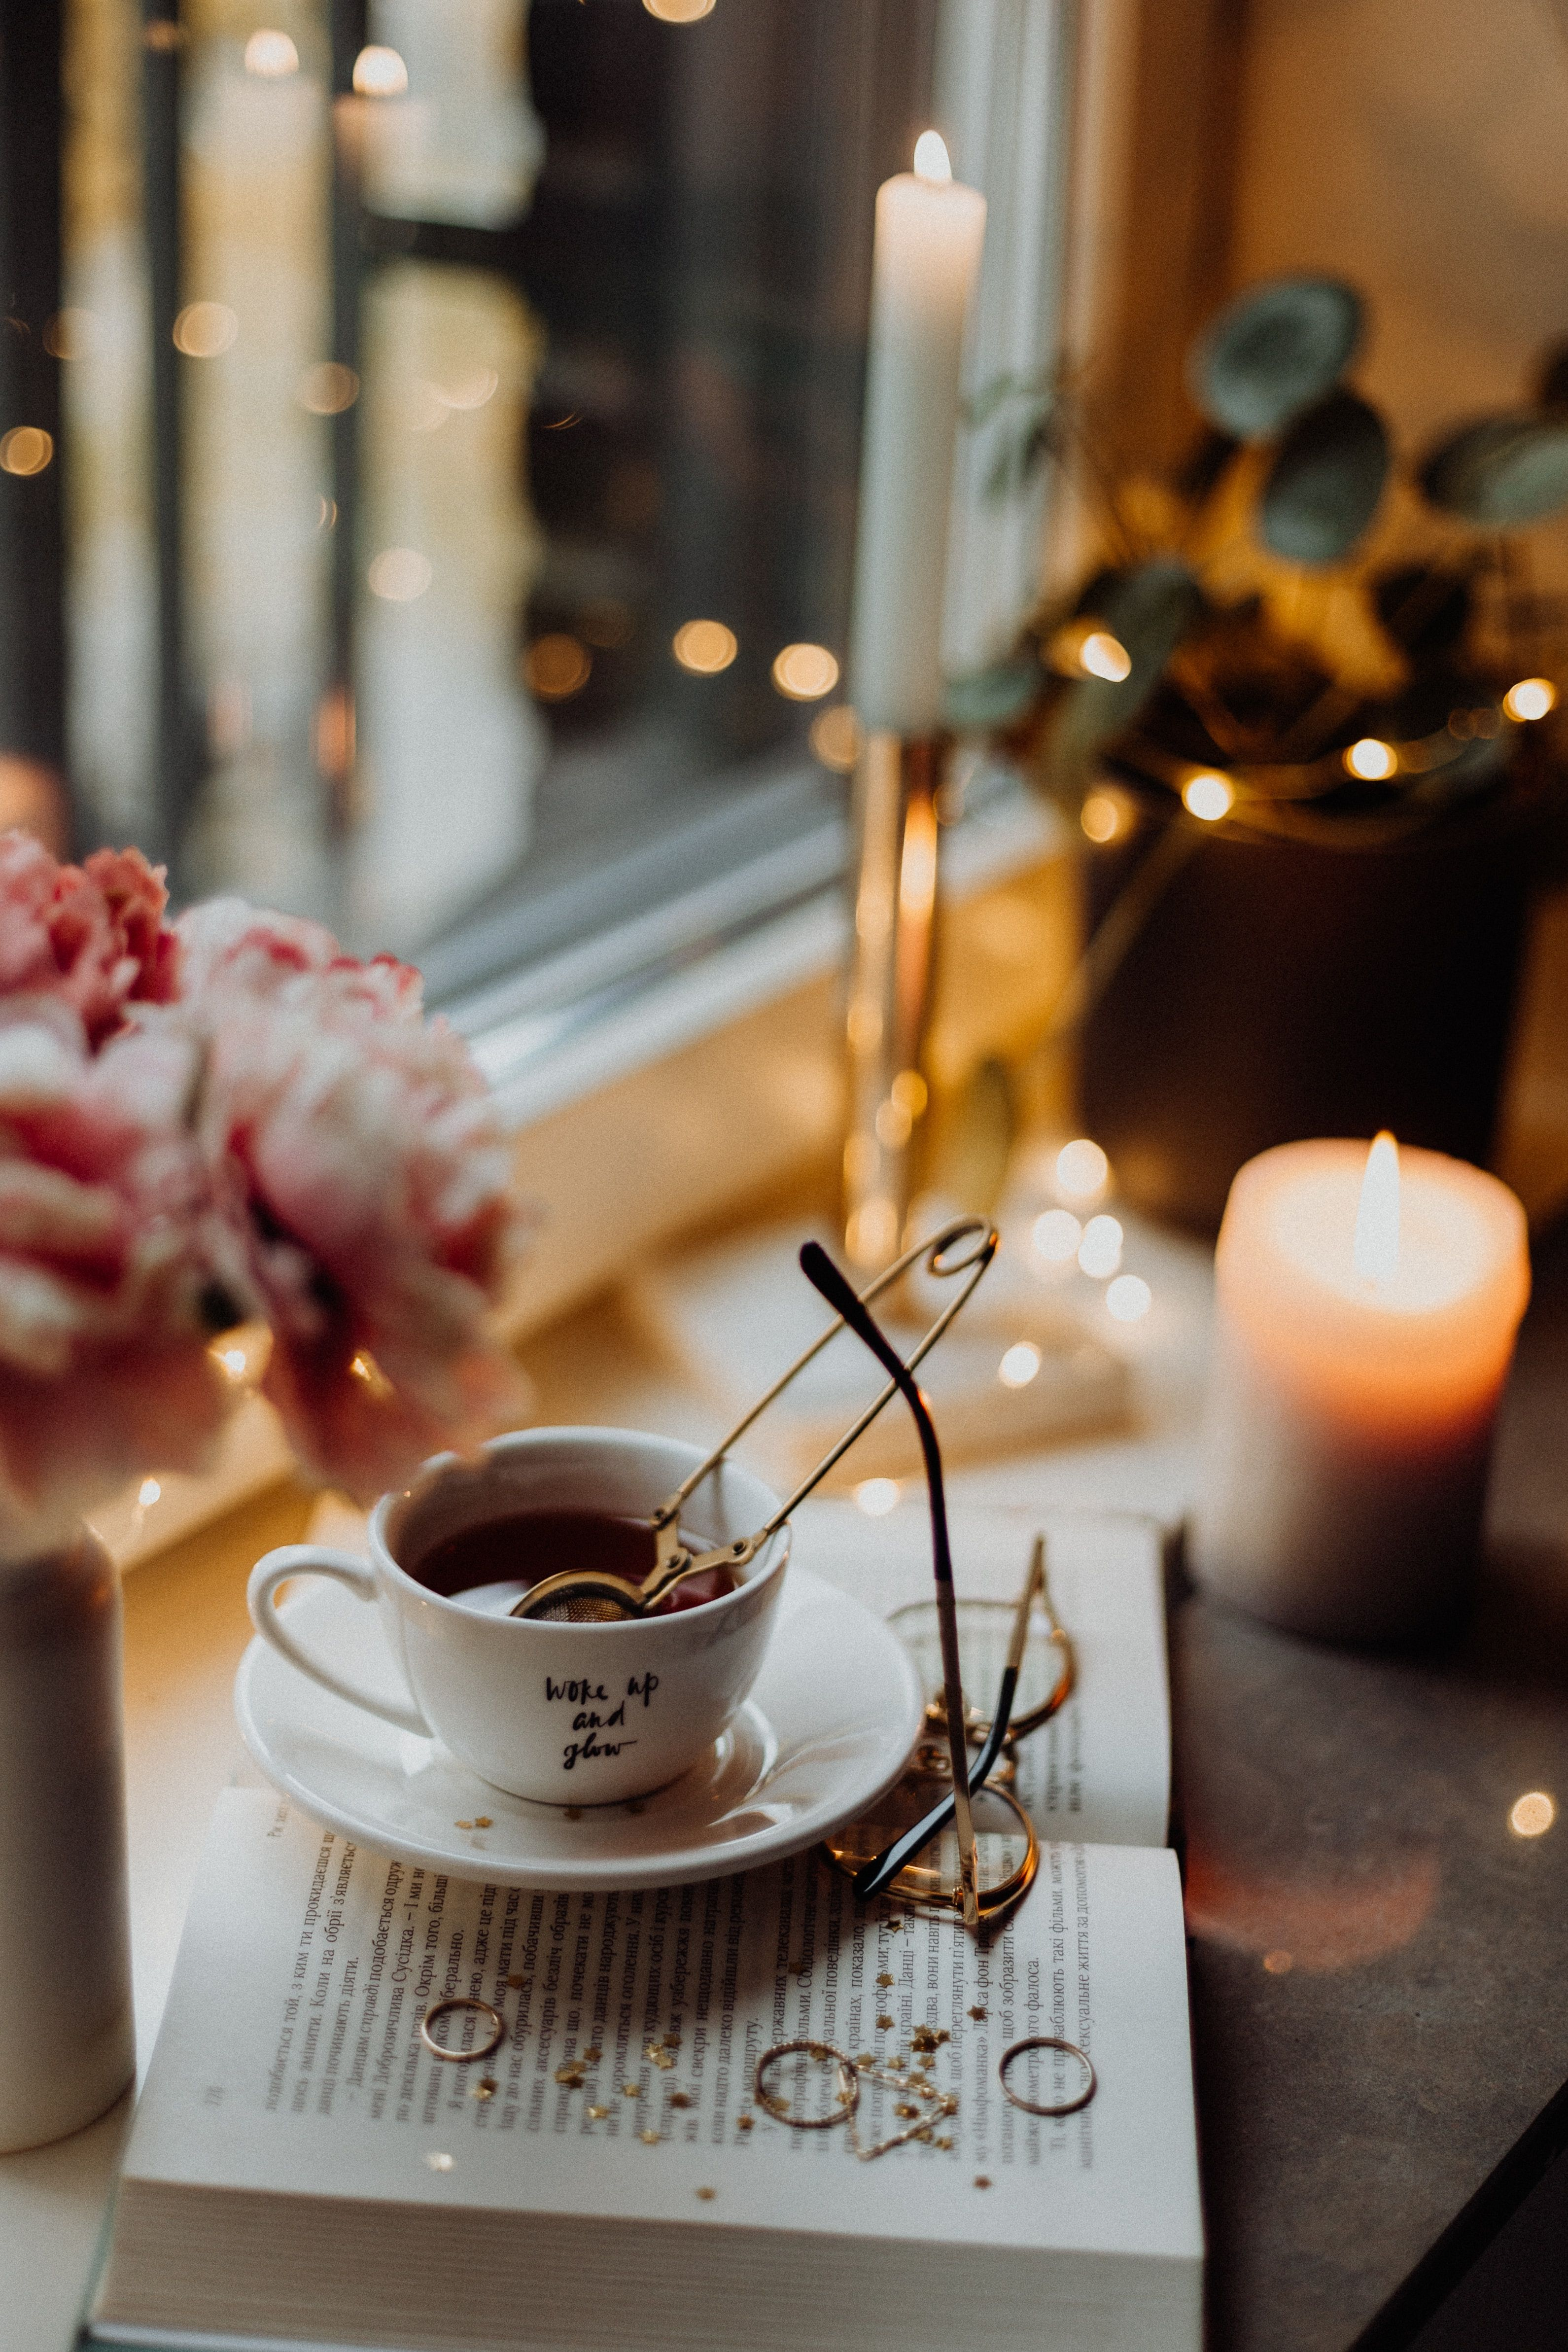 Home in 2020 Free candles, Best candles, Ceramic coffee cups